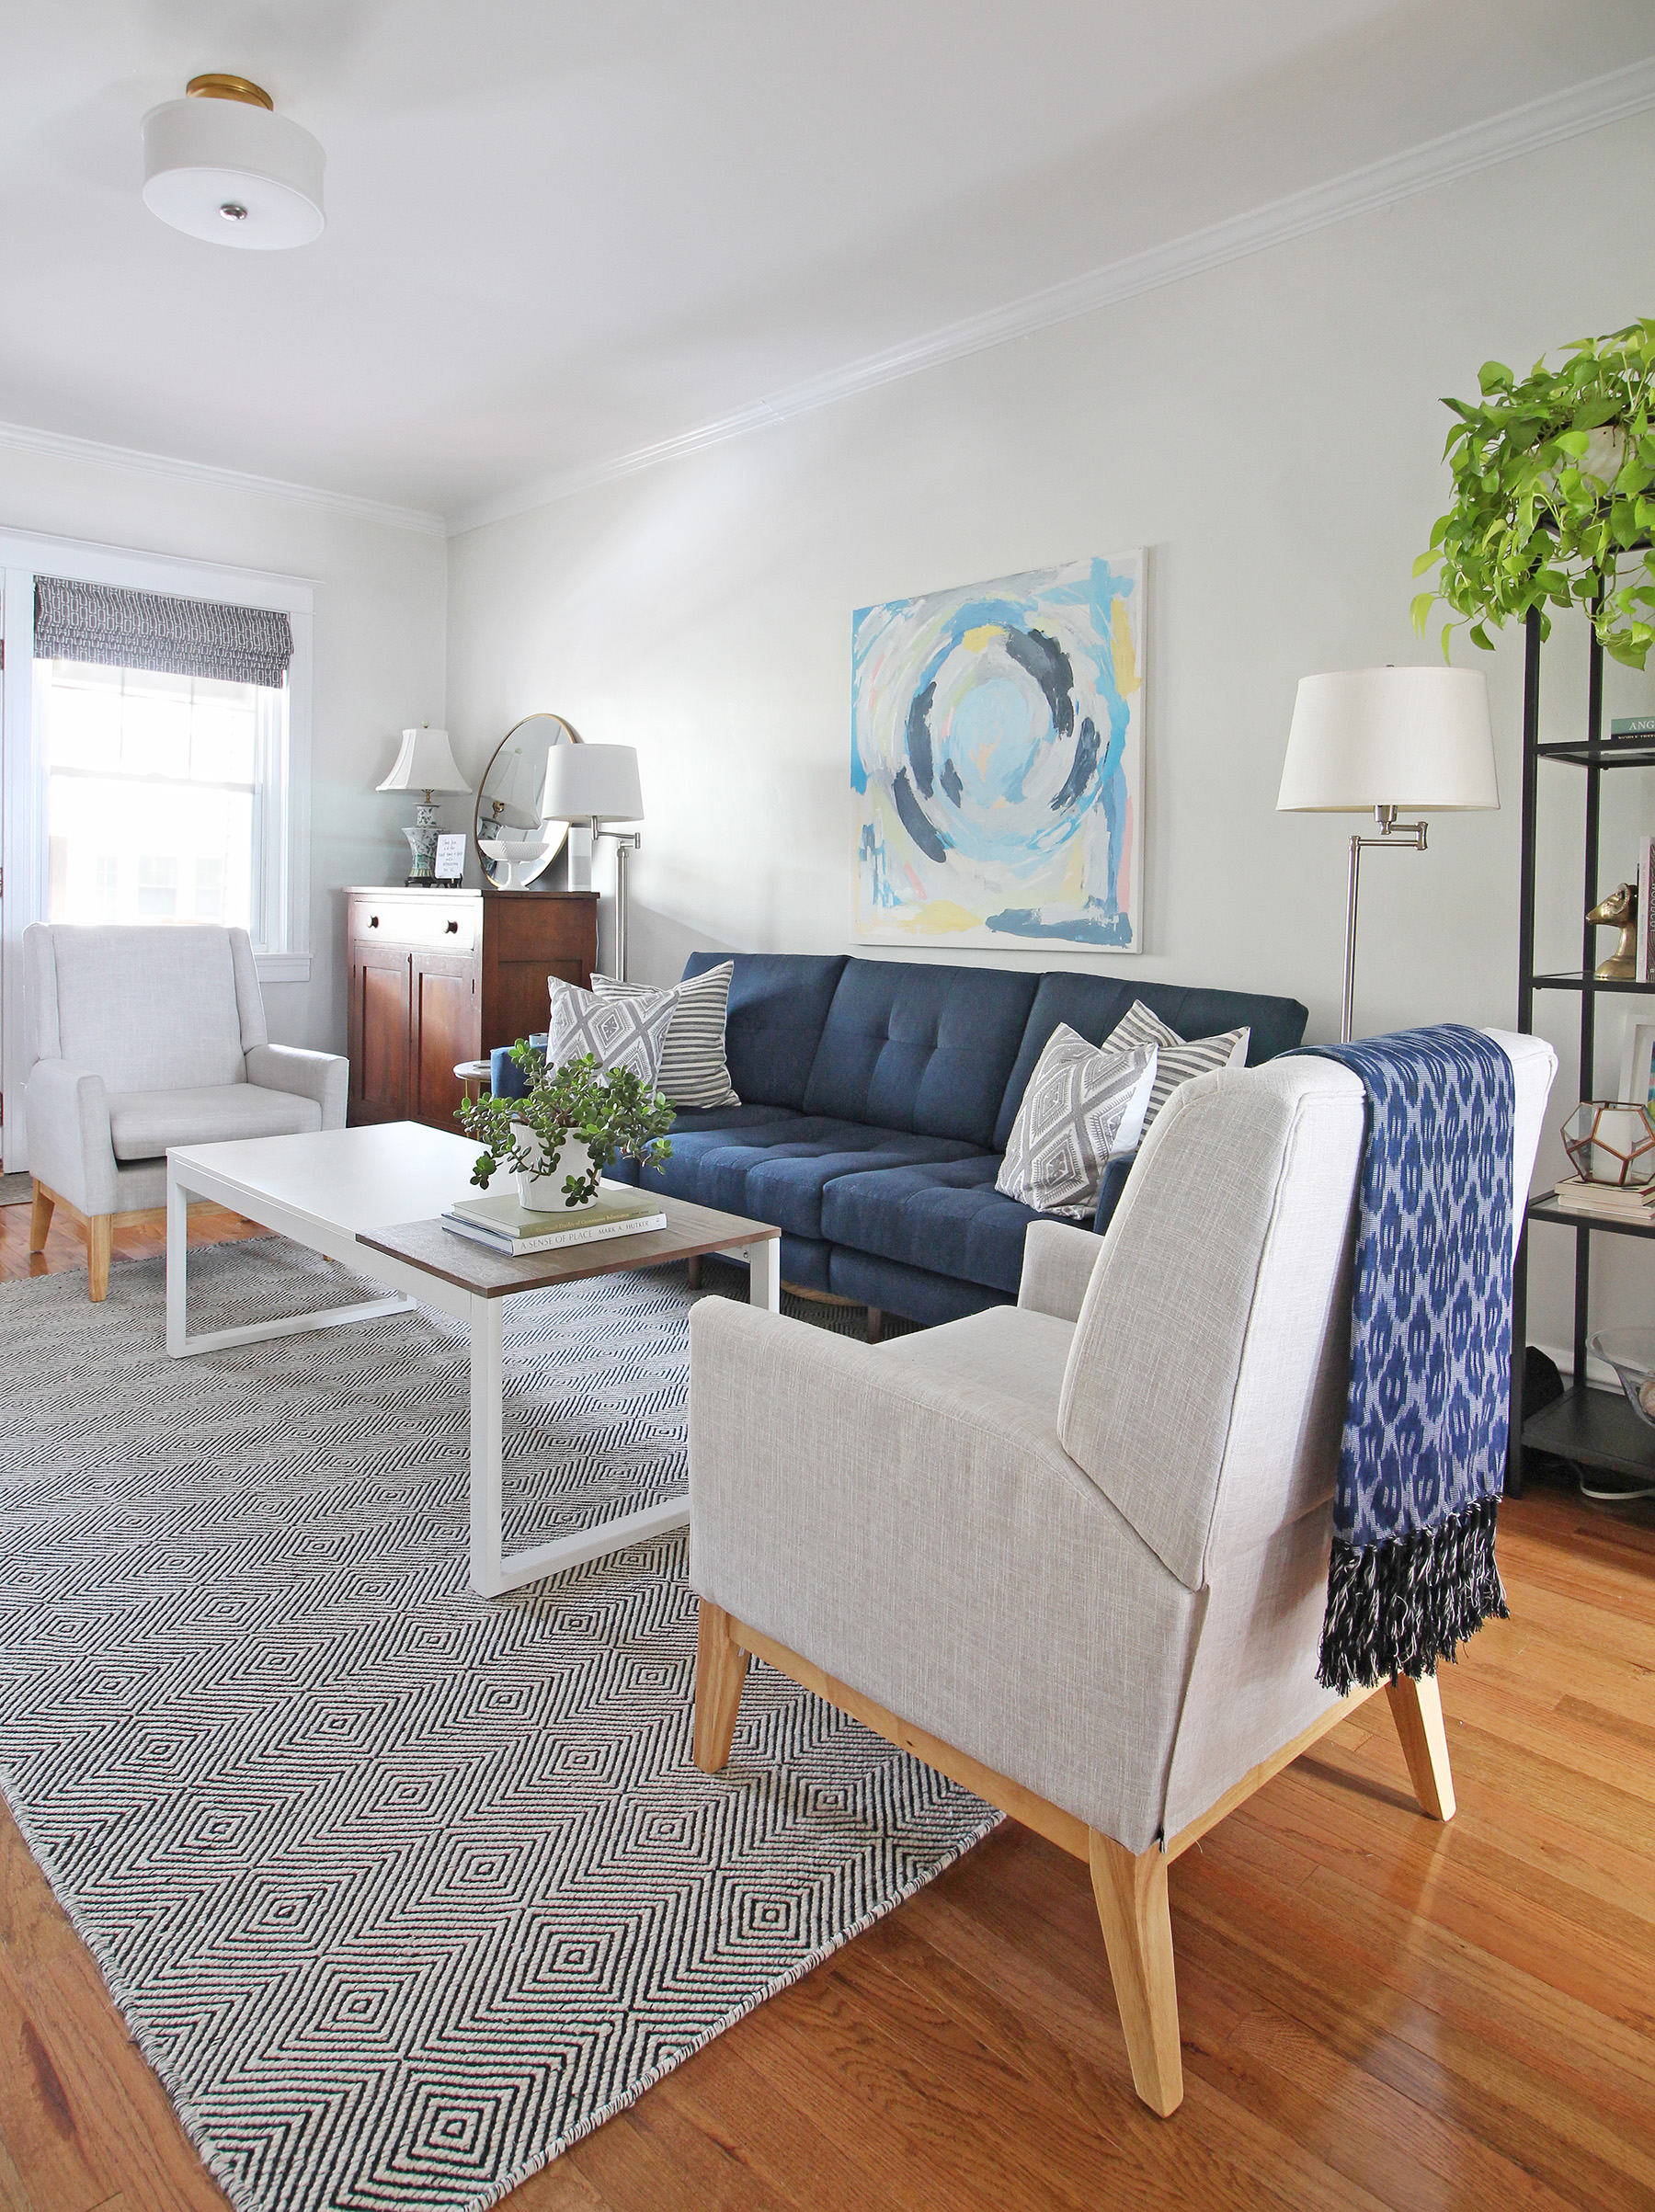 A 1930s row home in Philadelphia gets a big makeover. Come see the before and after of this home's living, dining, and kitchen open floor plan and get ideas for small space city living. Chaney's style is mid-century modern meets traditional that makes for an eclectic, cozy space. An open and airy living area.